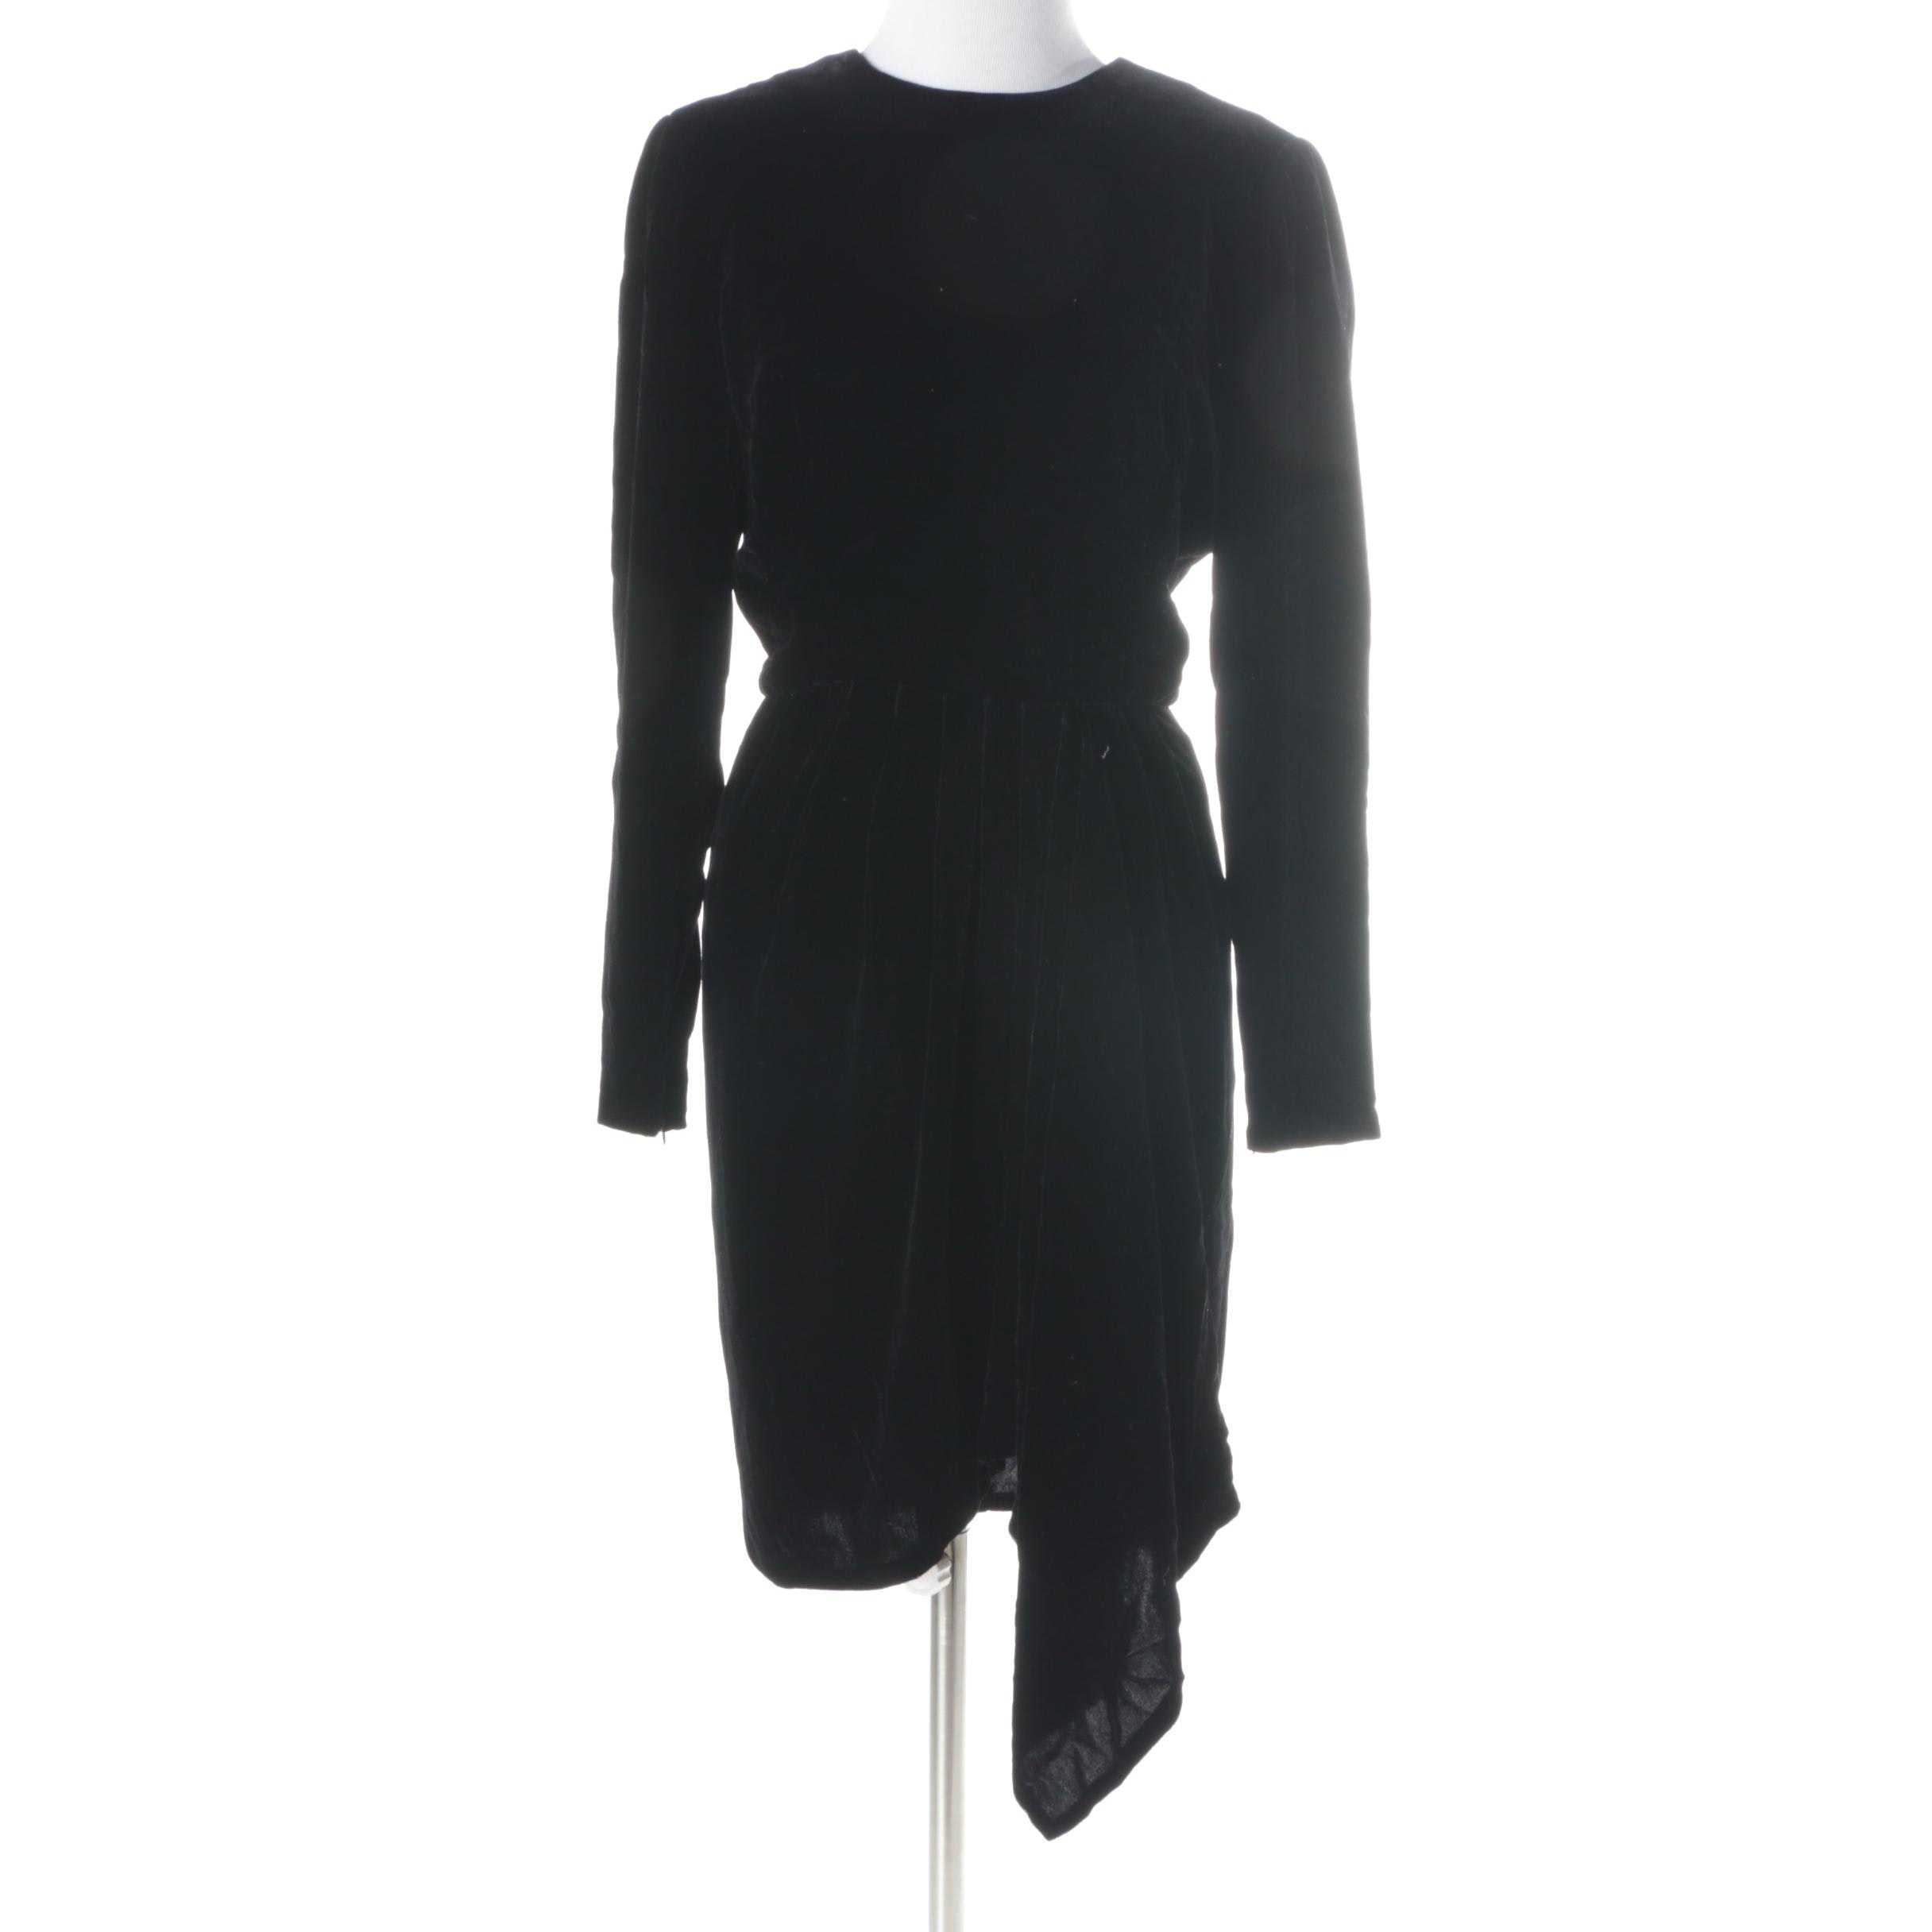 Women's Vintage Oscar de la Renta Black Velvet Dress